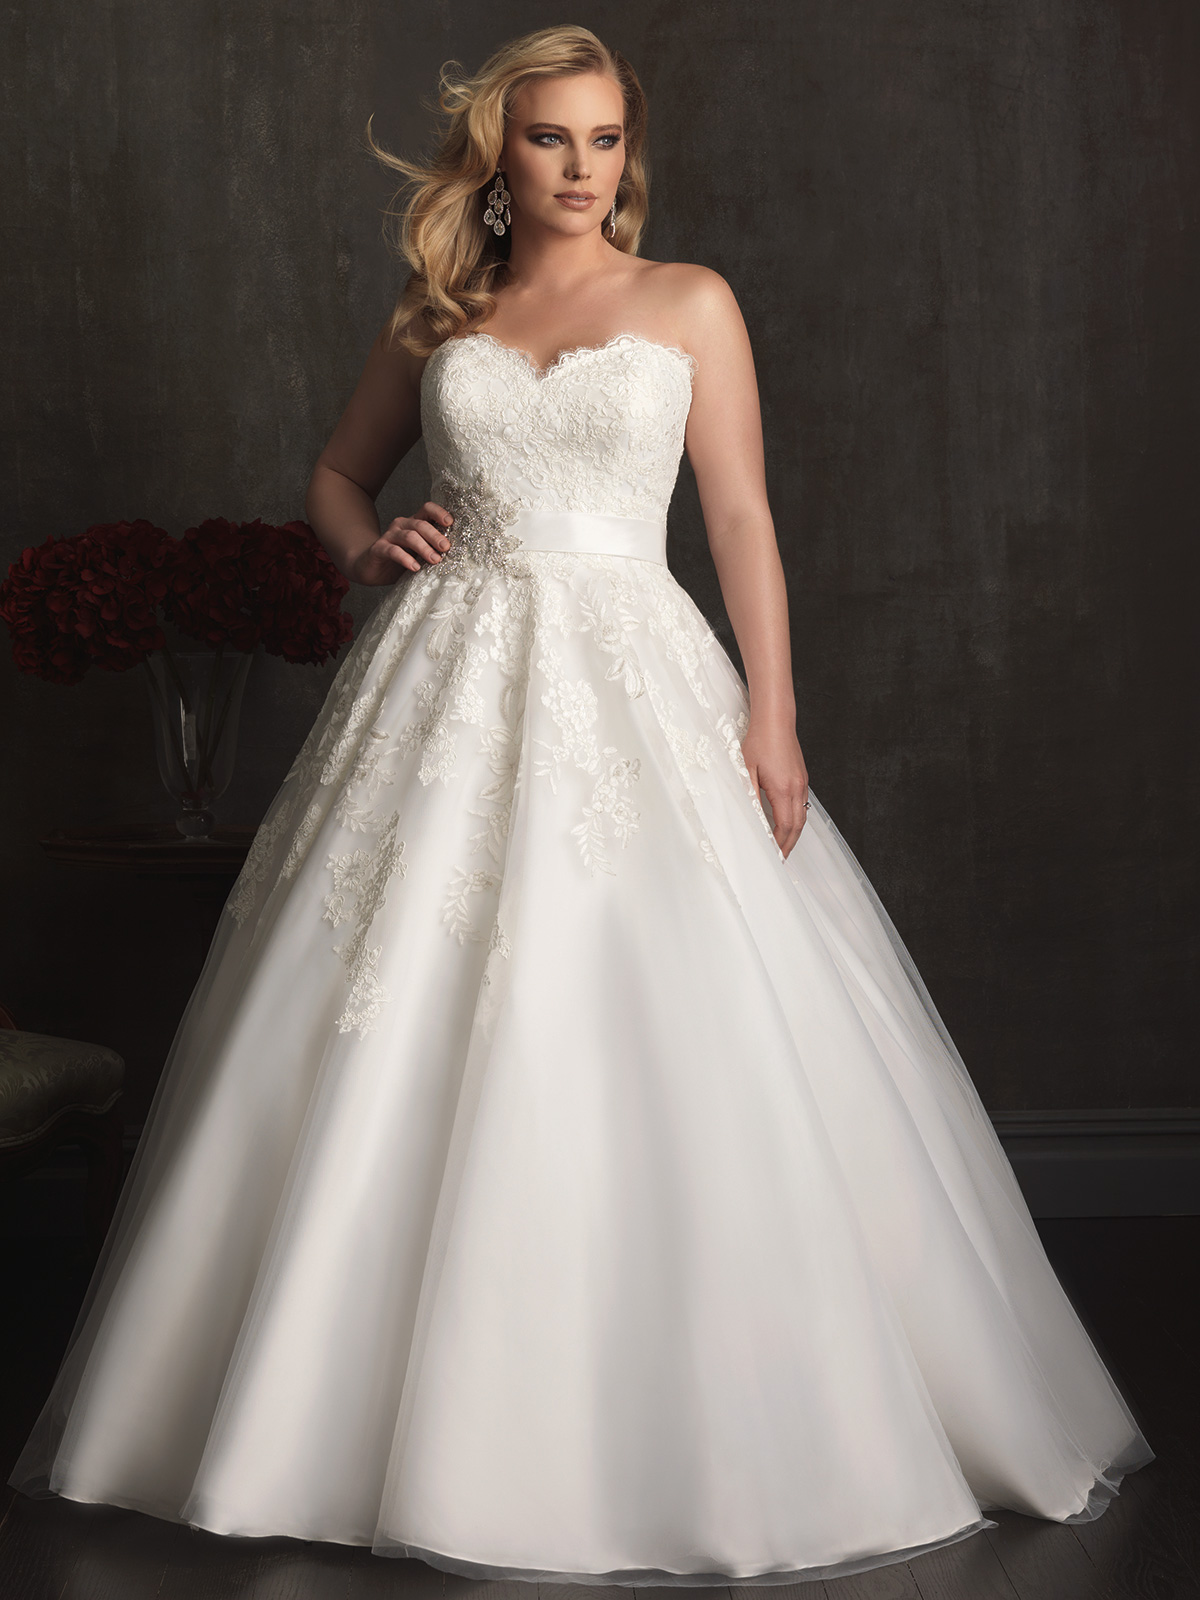 Sweetheart Ball Gown Allure Women Bridal Gown W320 ...